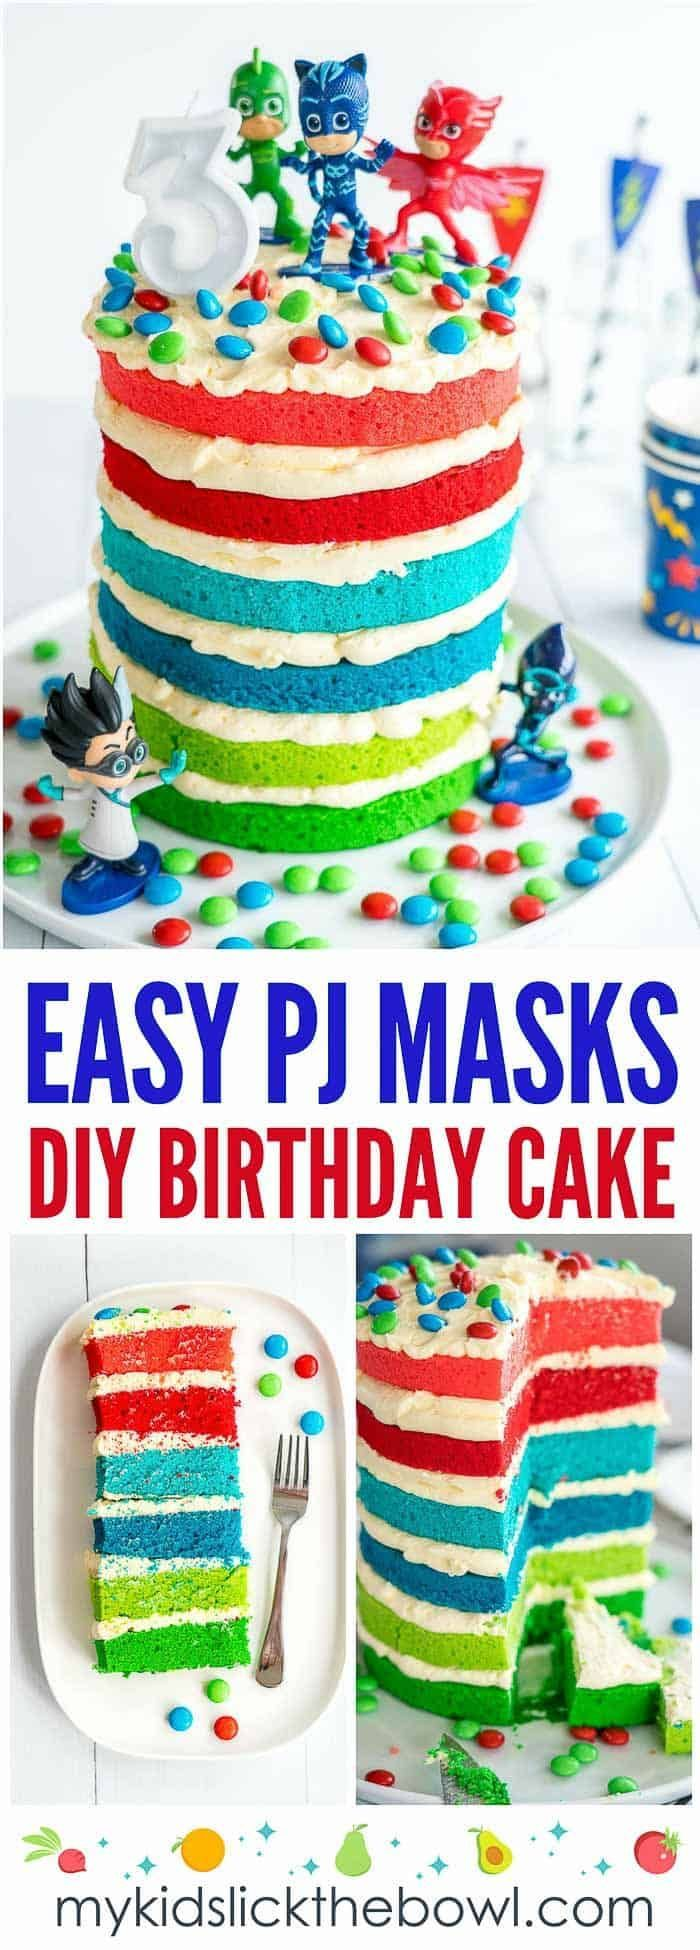 Pj Masks Cake Recipe Diy Birthday Cake Little Girl Birthday